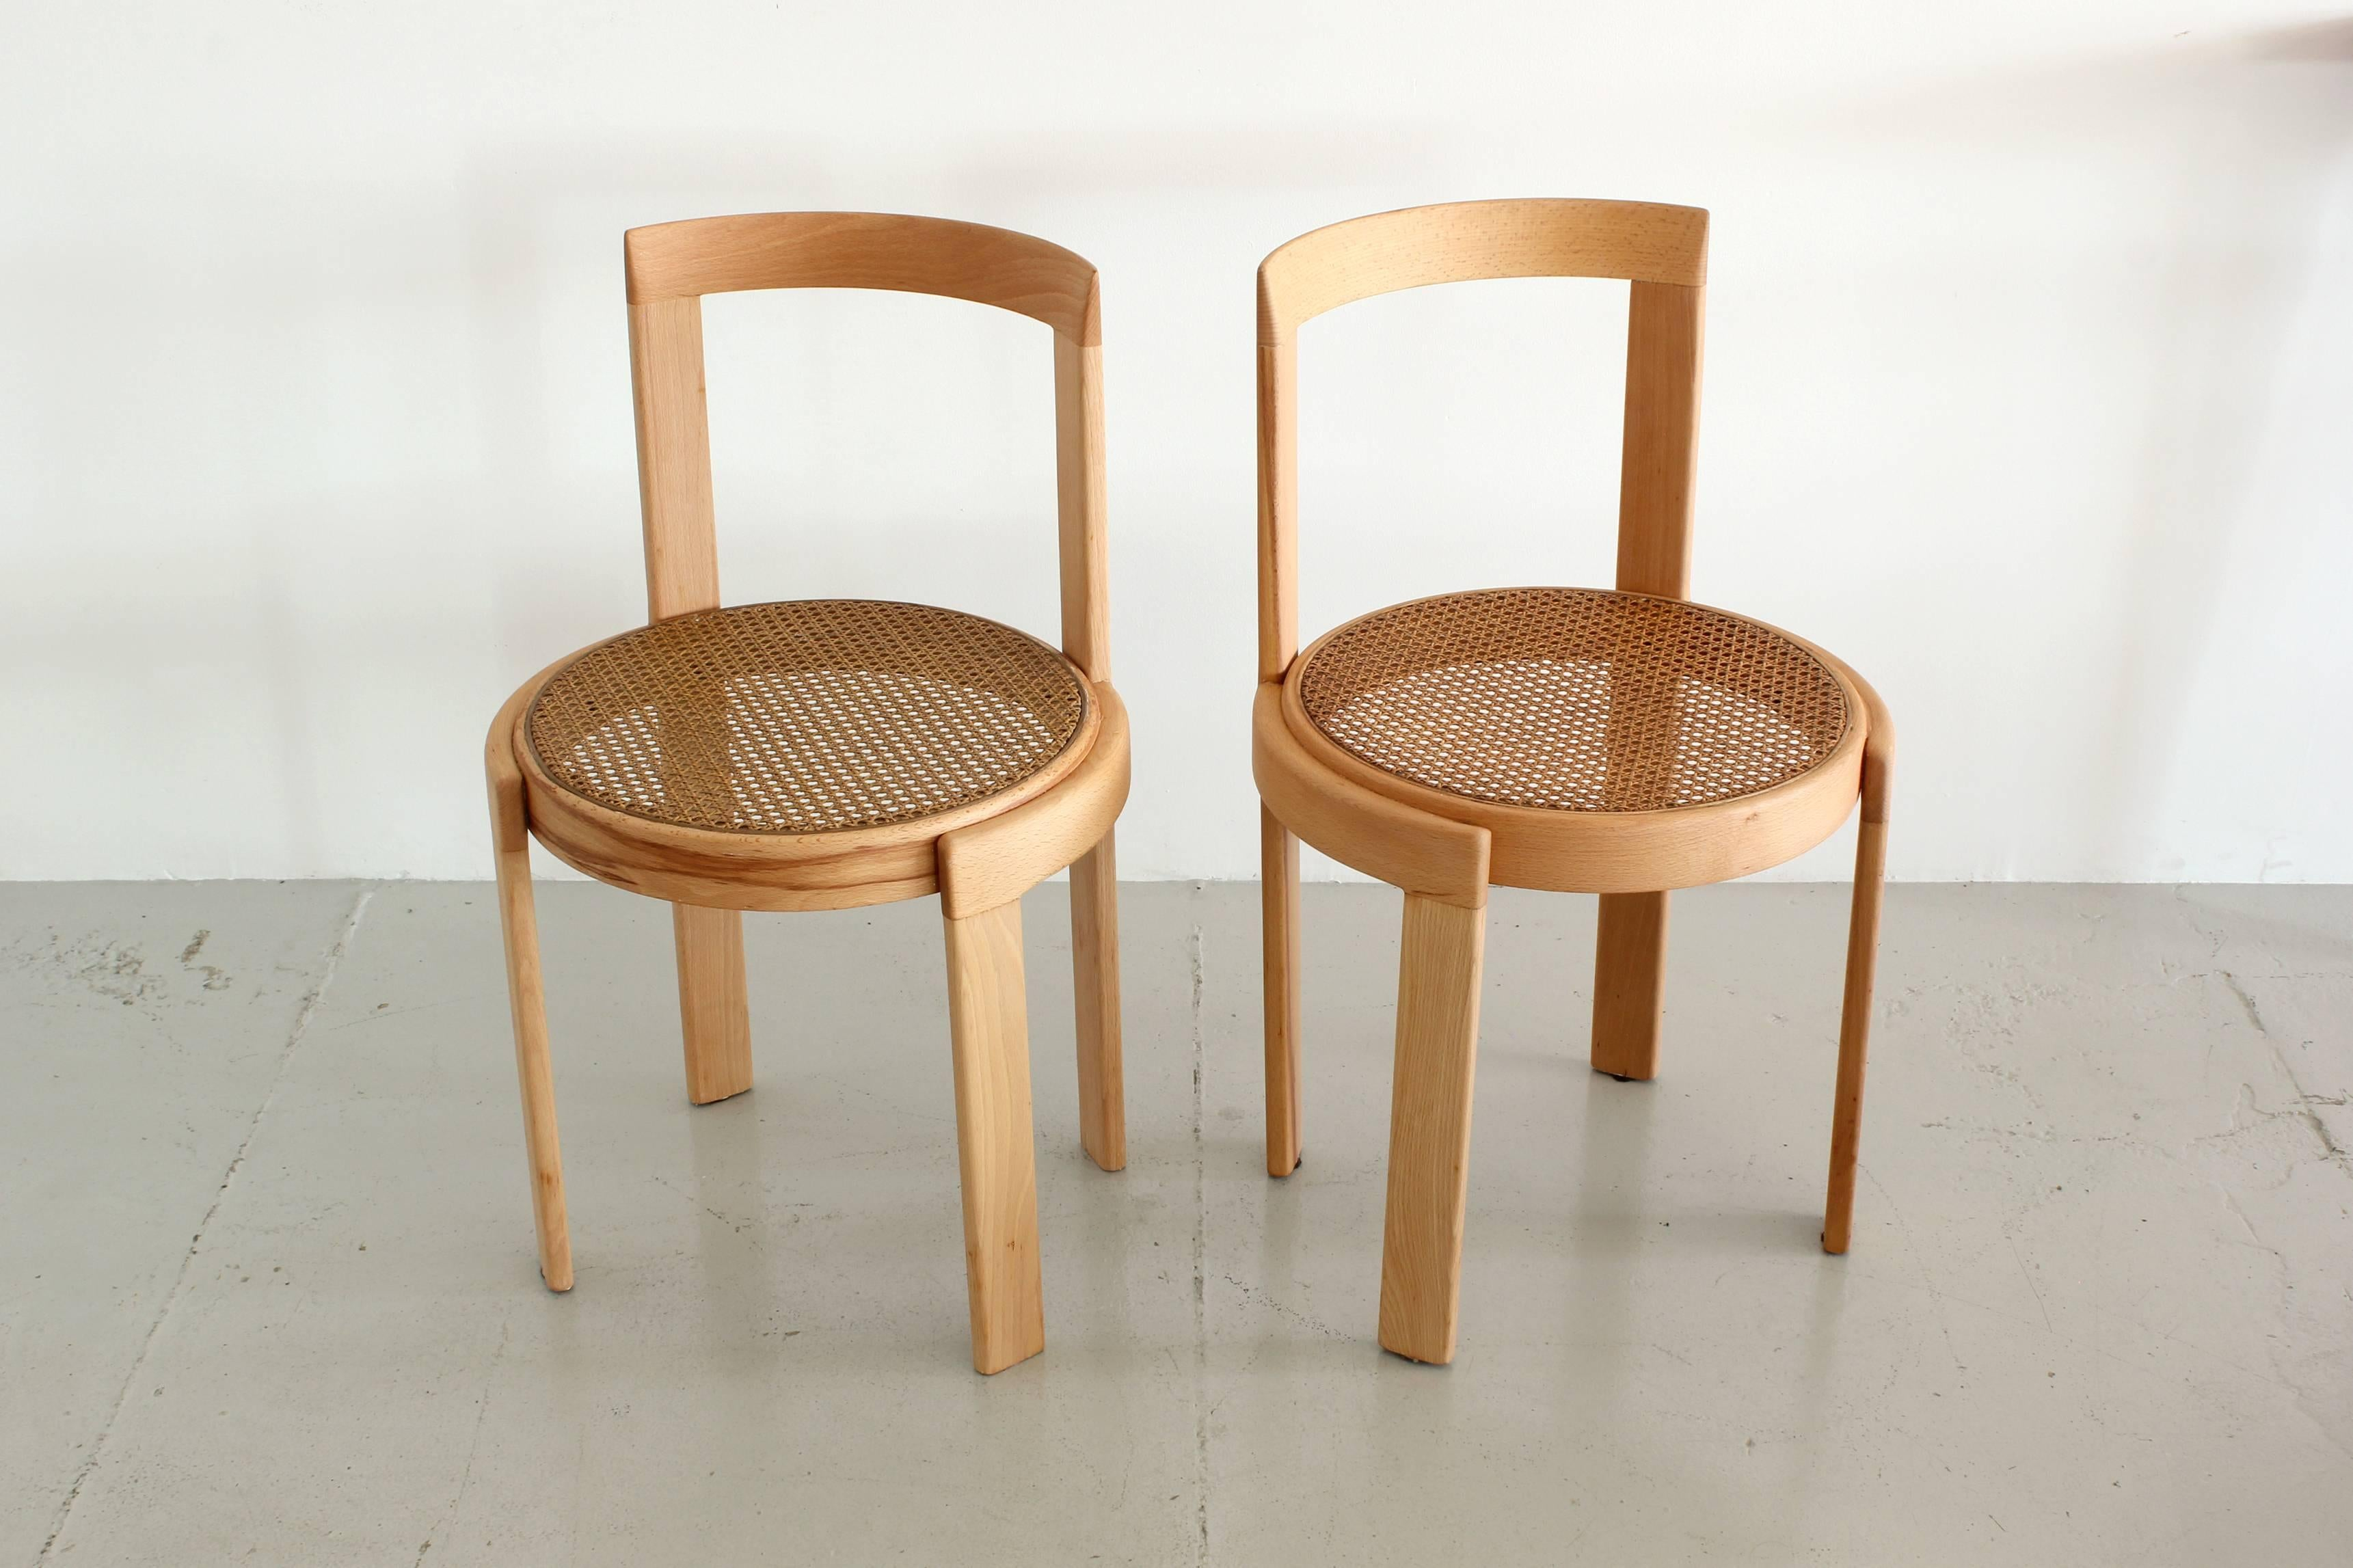 Italian Bentwood Cane Chairs In Natural Beech 2